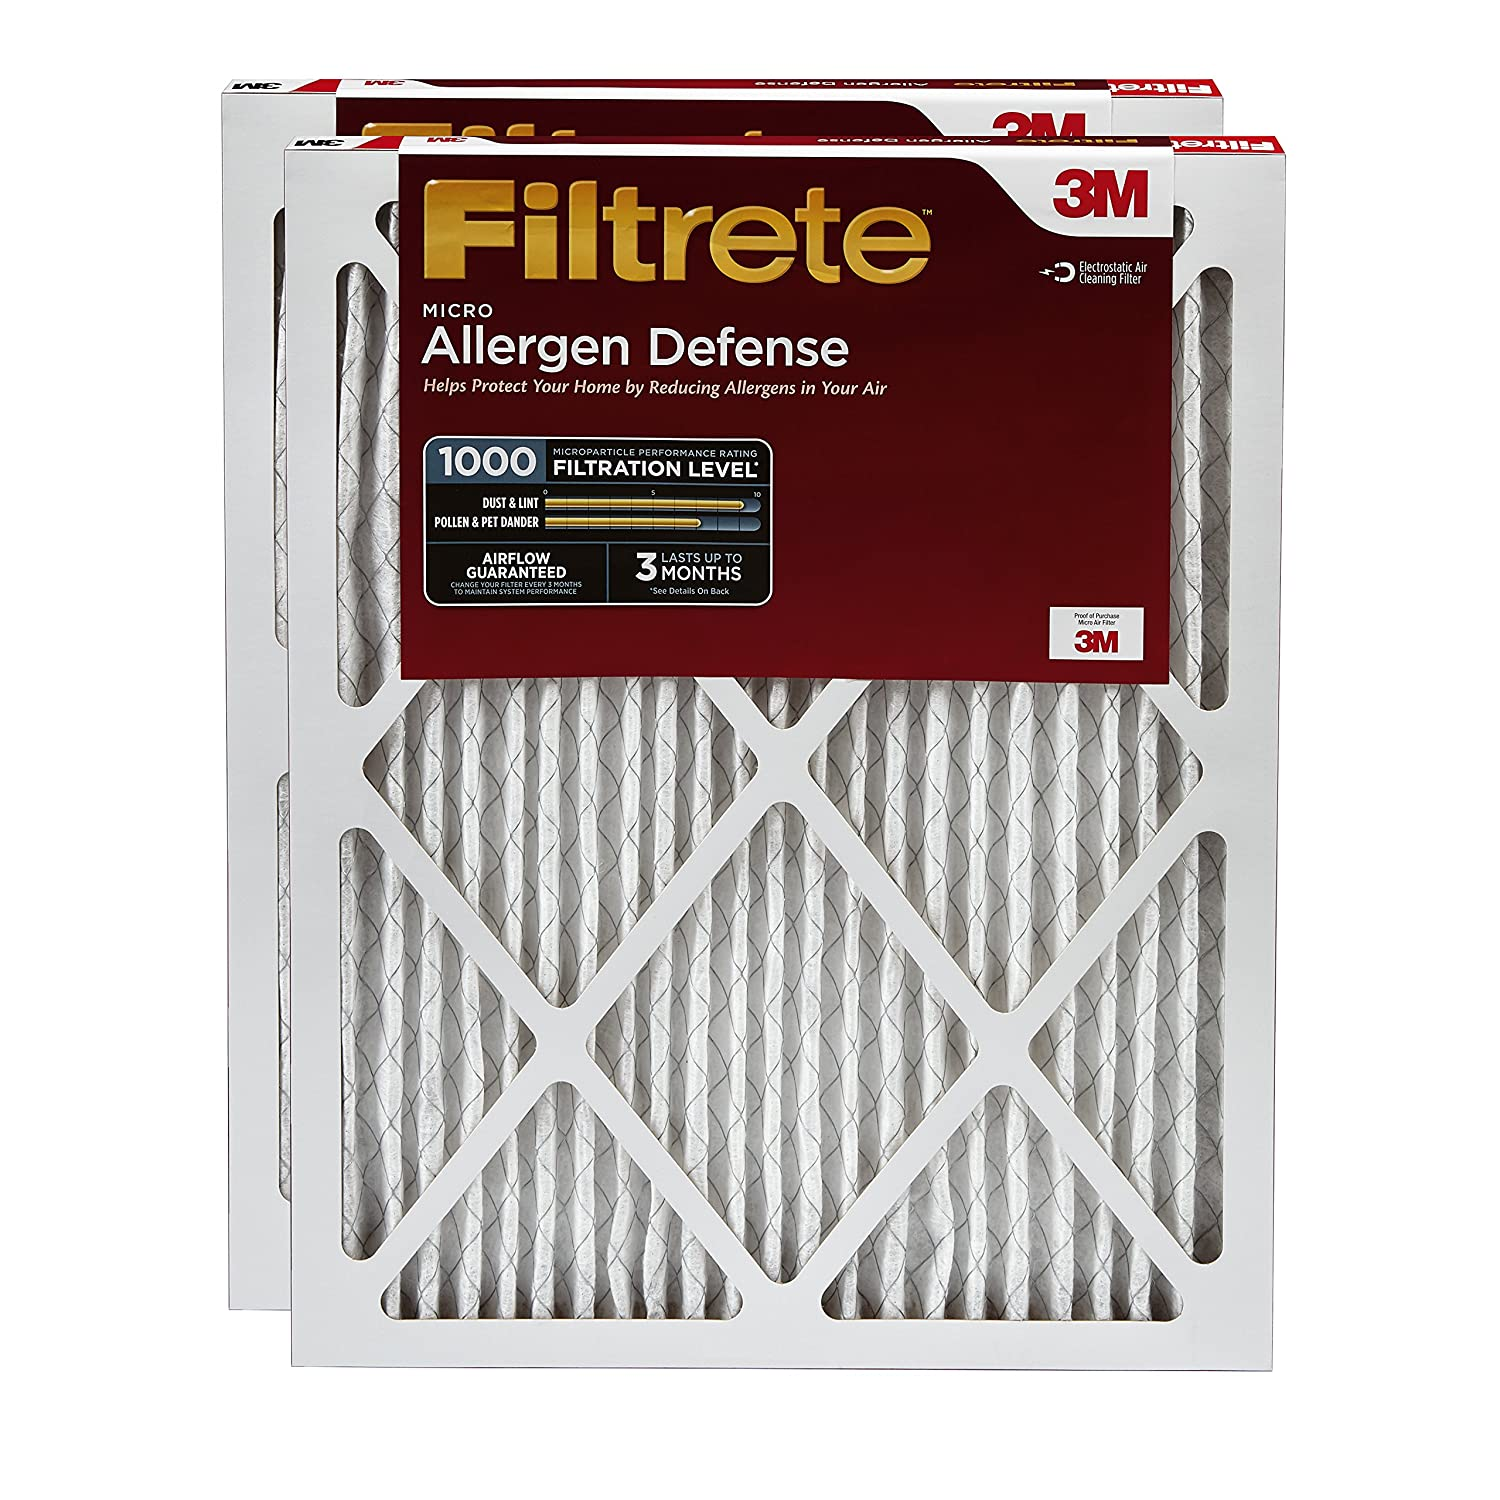 3. Filtrete 14x25x1, AC Furnace Air Filter, MPR 1000, Micro Allergen Defense, 2-Pack